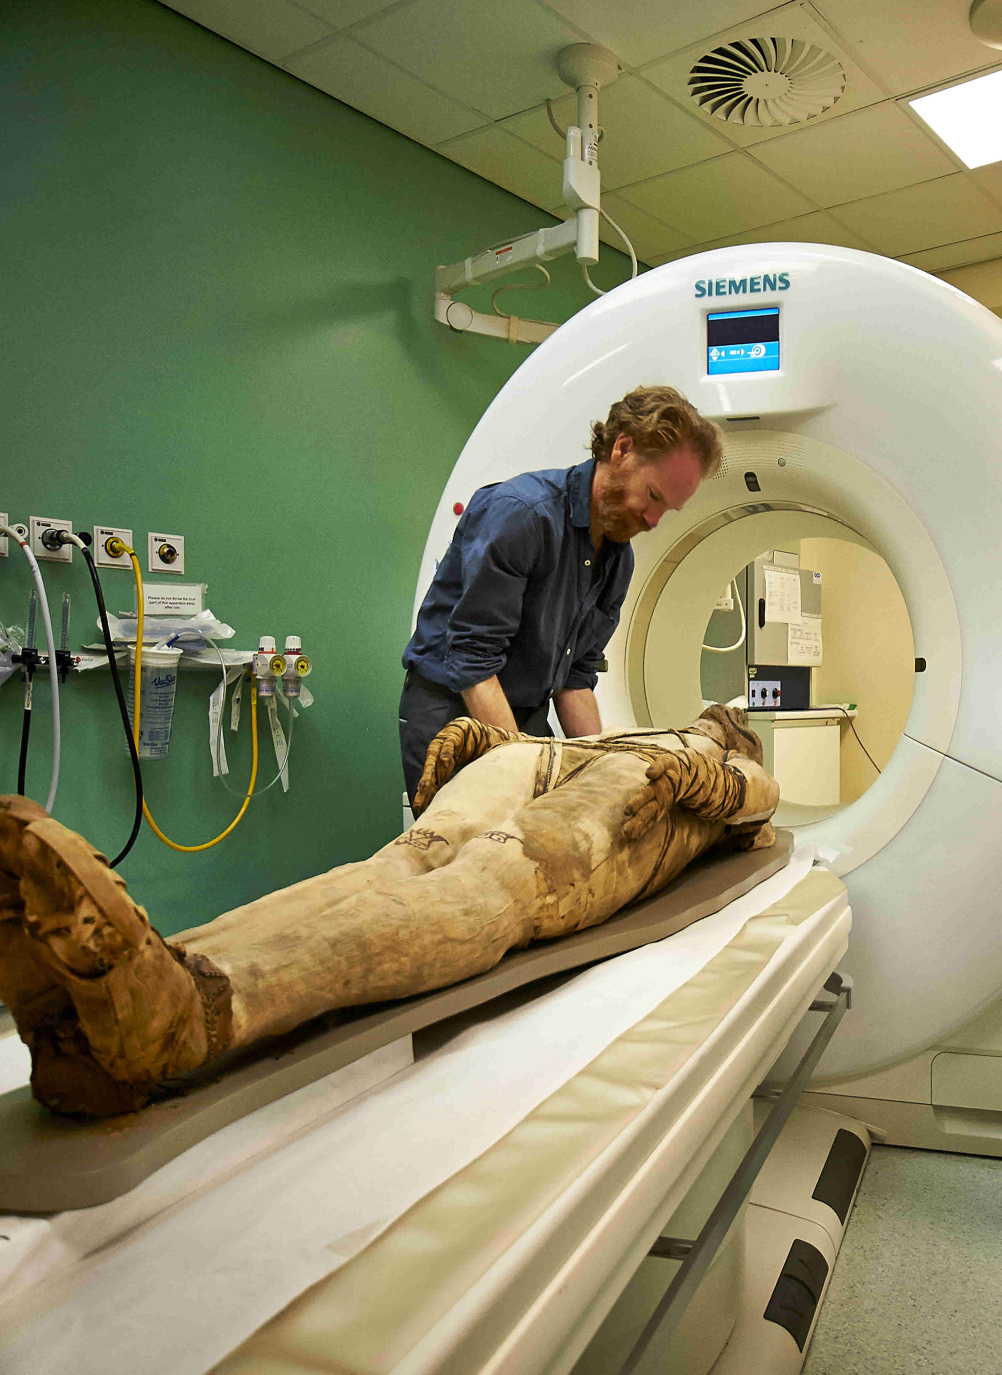 A mummy undergoing a CT scan at the Royal Brompton Hospital.